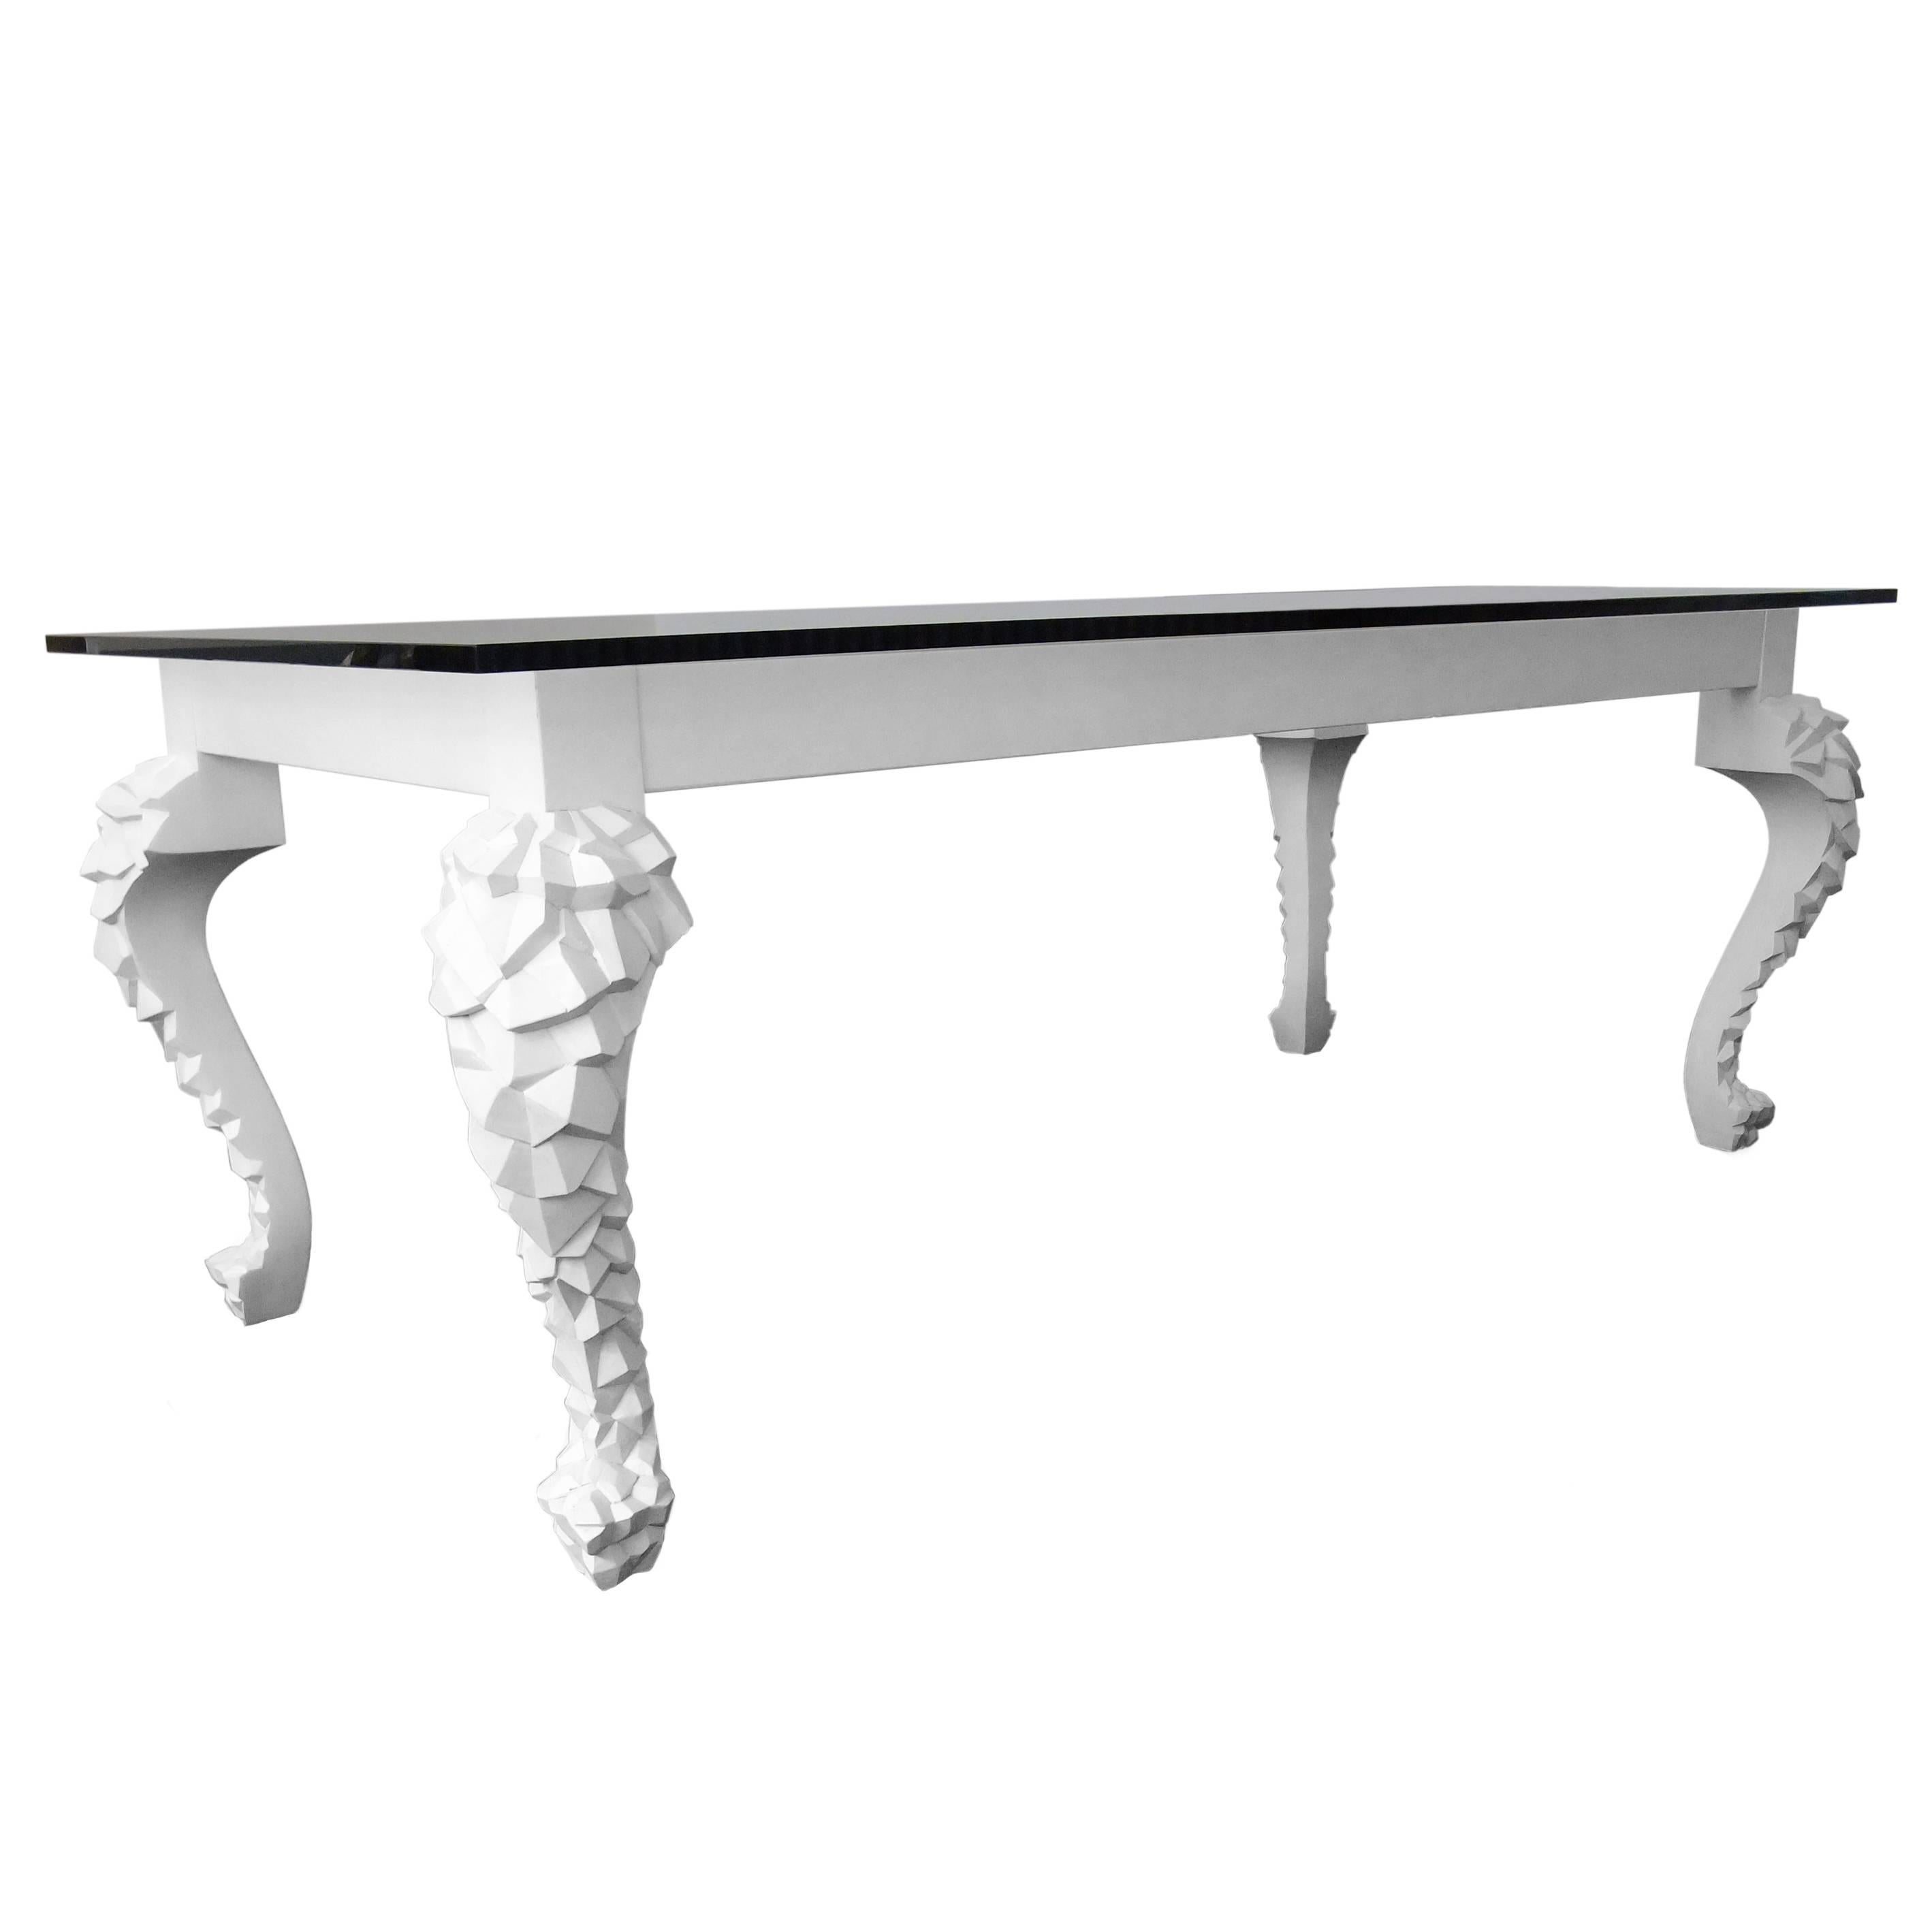 Crusty - hand-carved modern table, designed by Nigel Coates